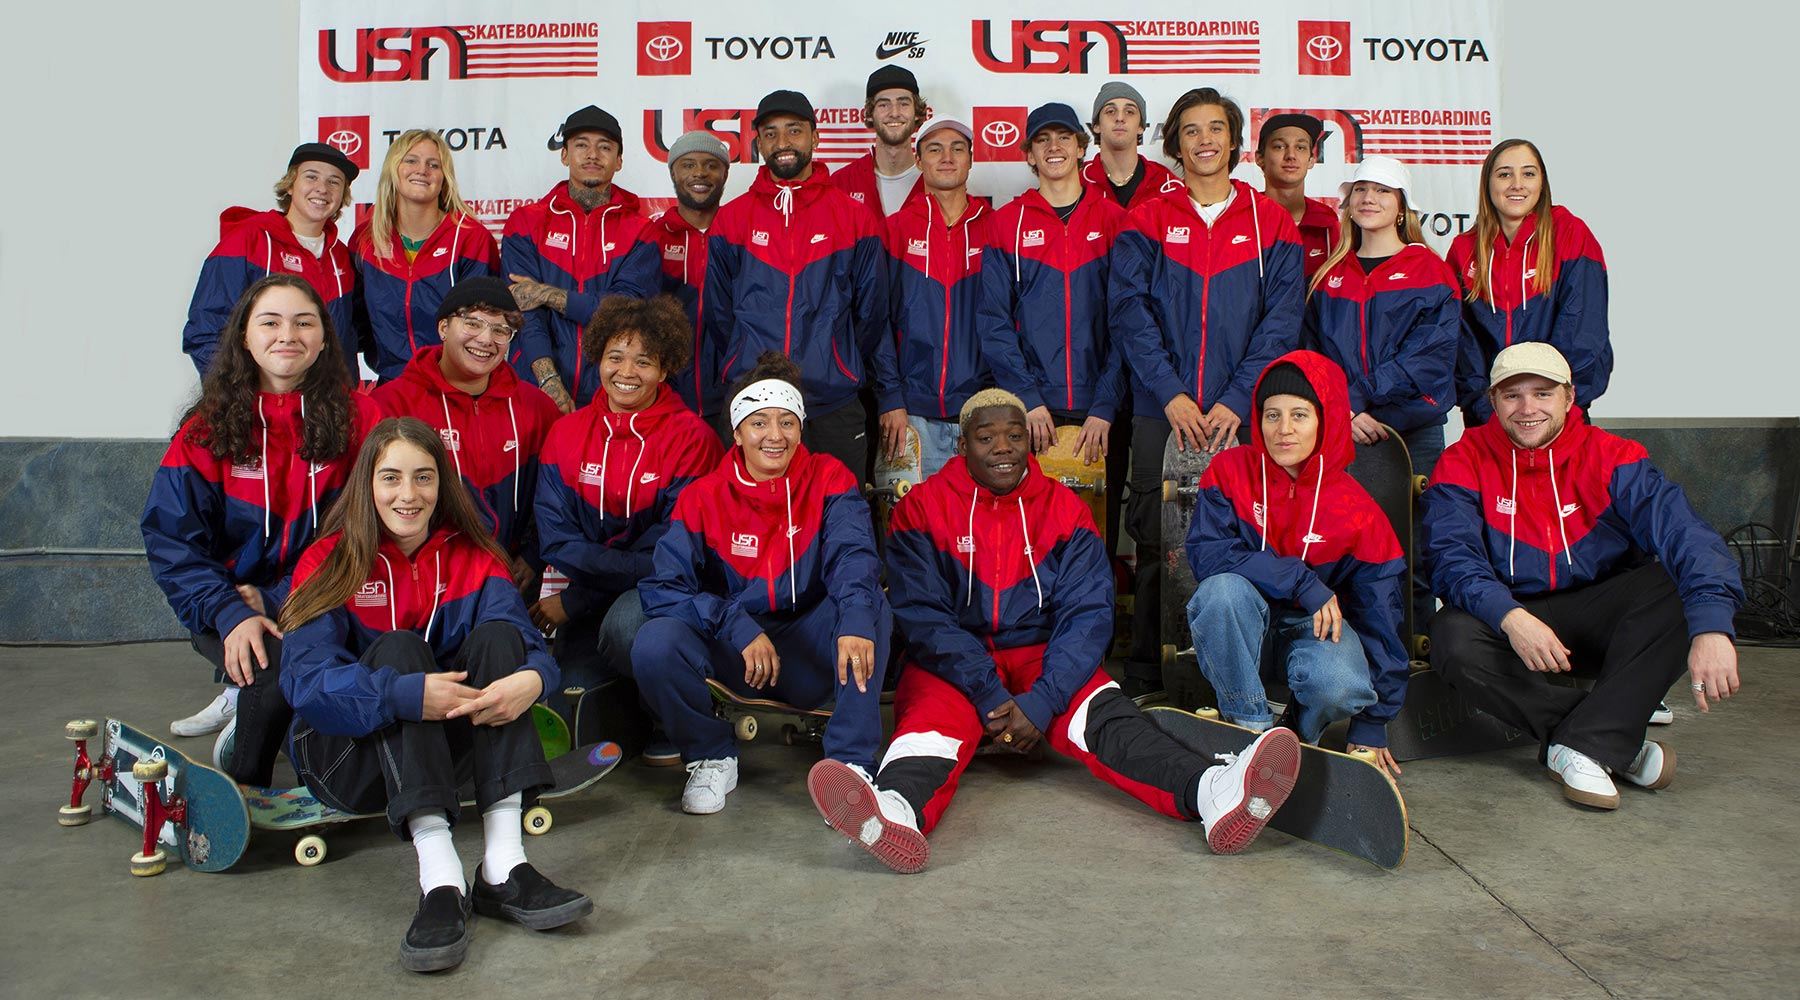 ***Save The Date***  2021 USA Skateboarding National Team Announcement Presented by Toyota USA